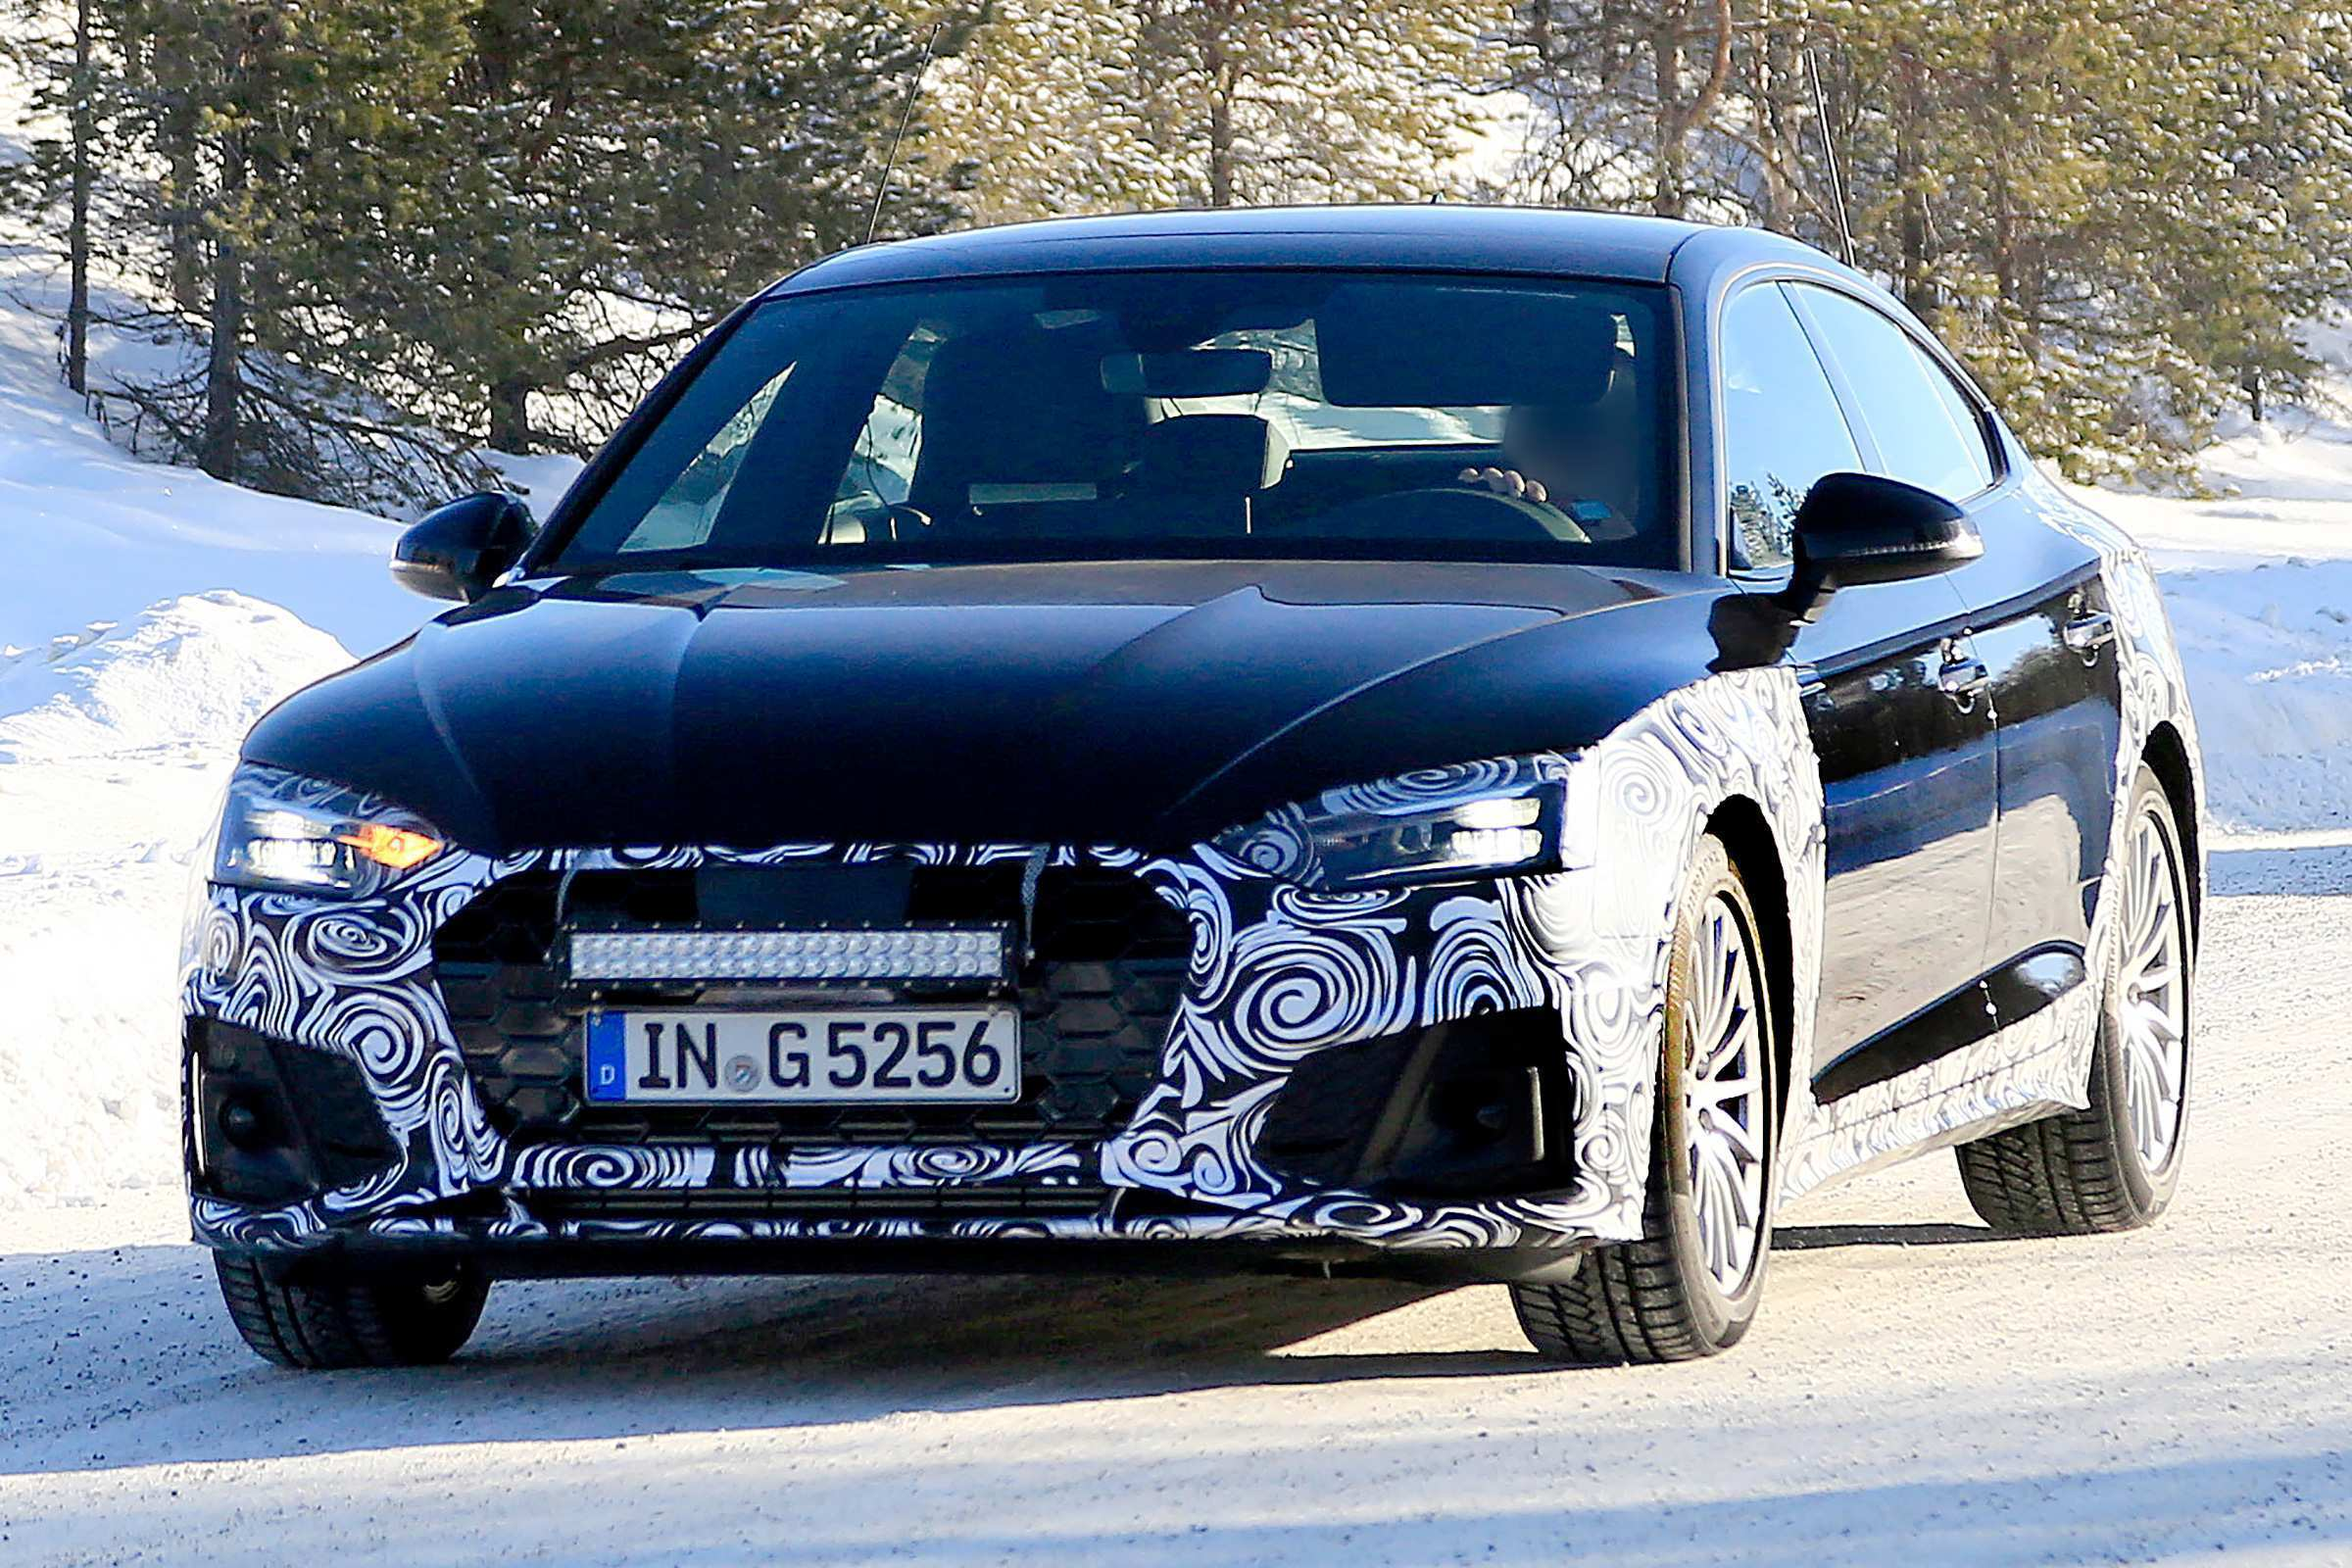 43 New The Audi 2019 Changes Spy Shoot Style with The Audi 2019 Changes Spy Shoot